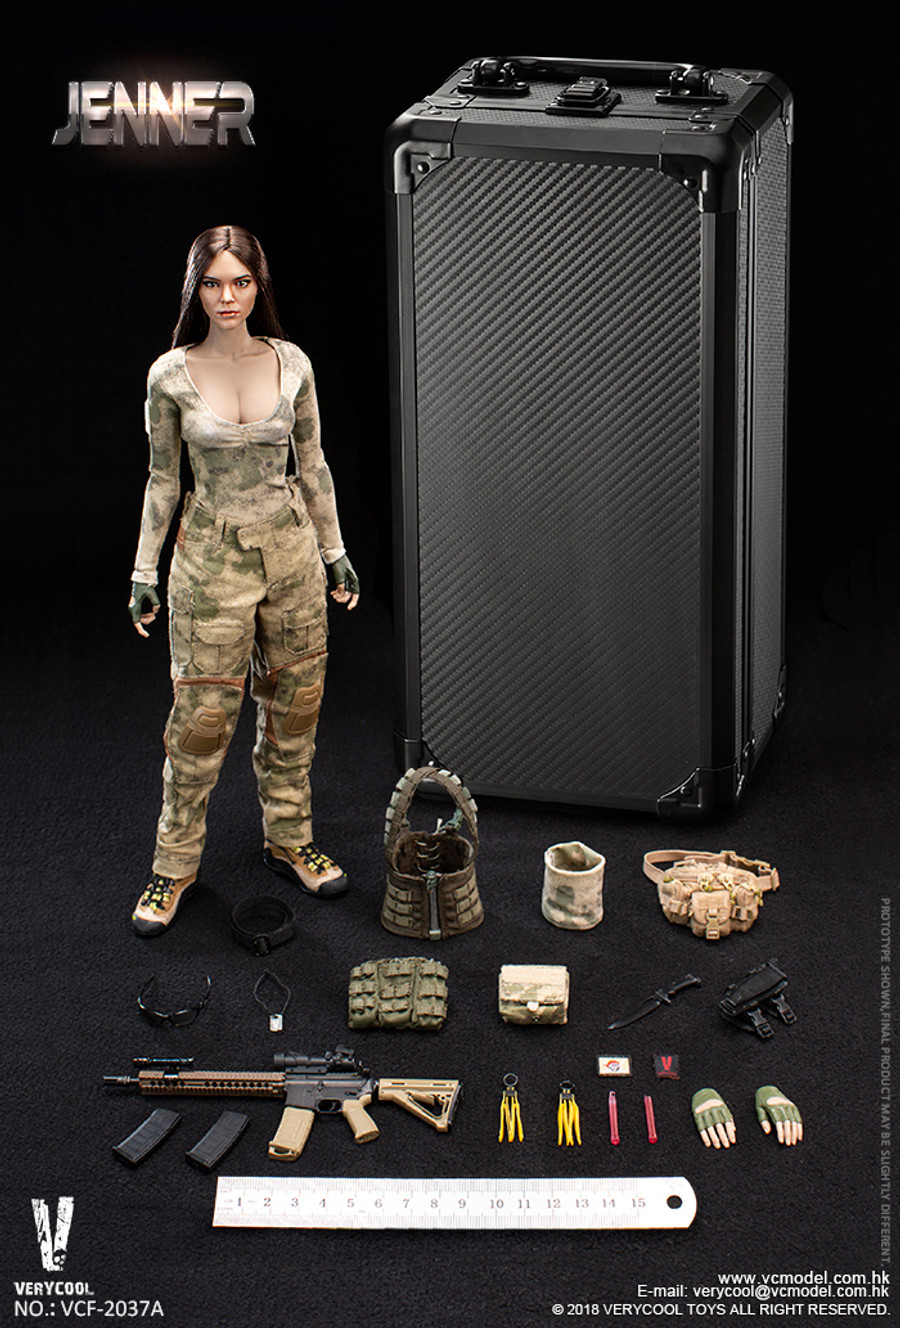 Very Cool - Women Soldier - Jenner (A Style)